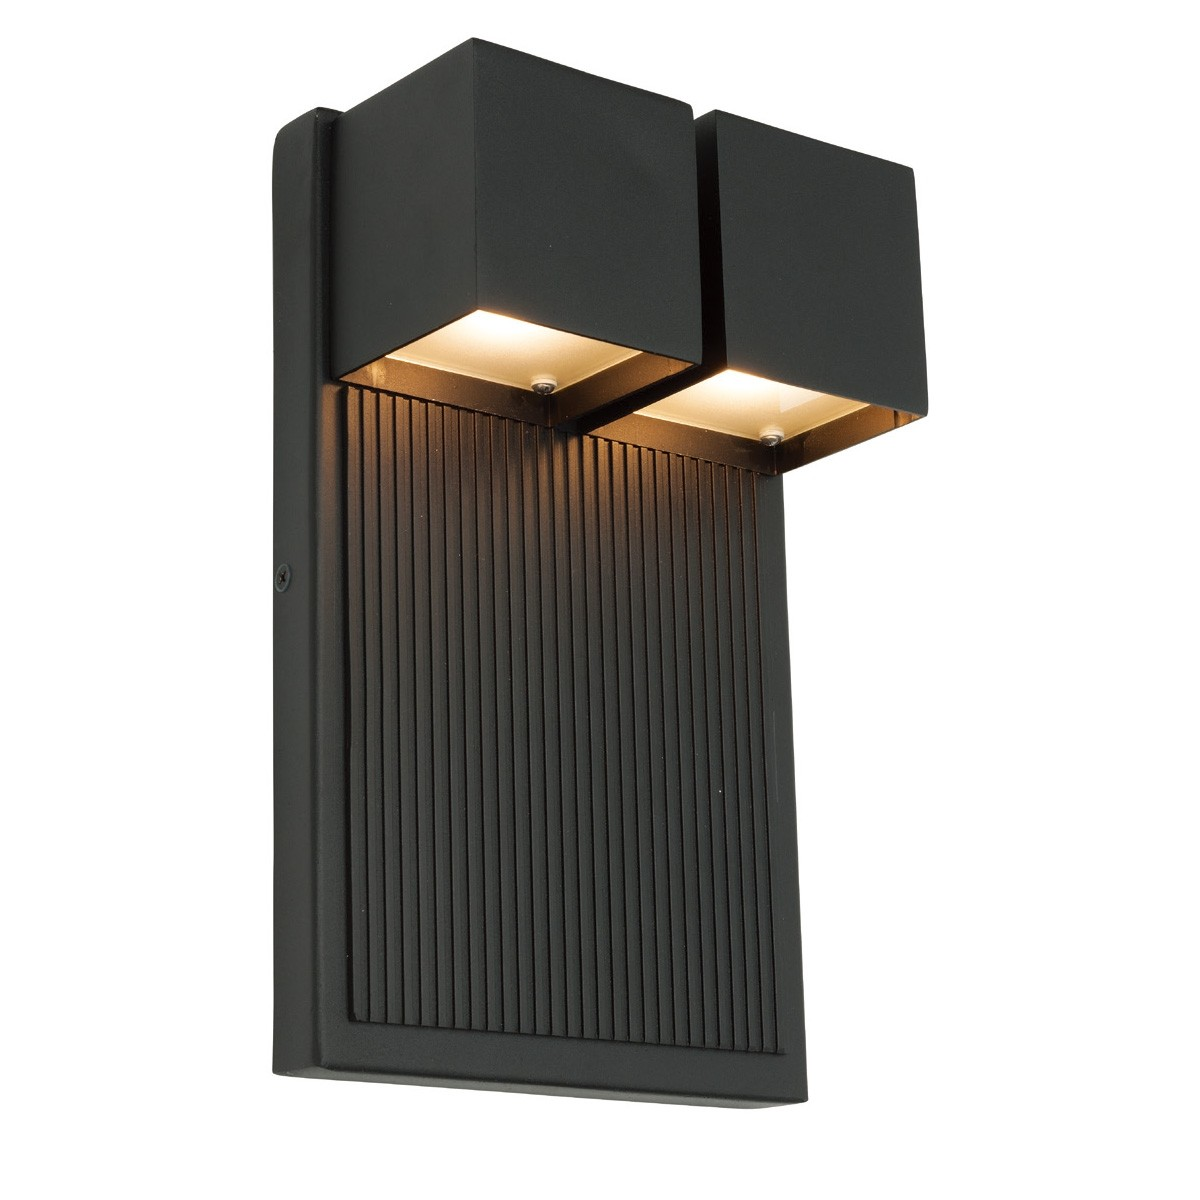 Tucson IP44 Exterior LED Wall Light, Black